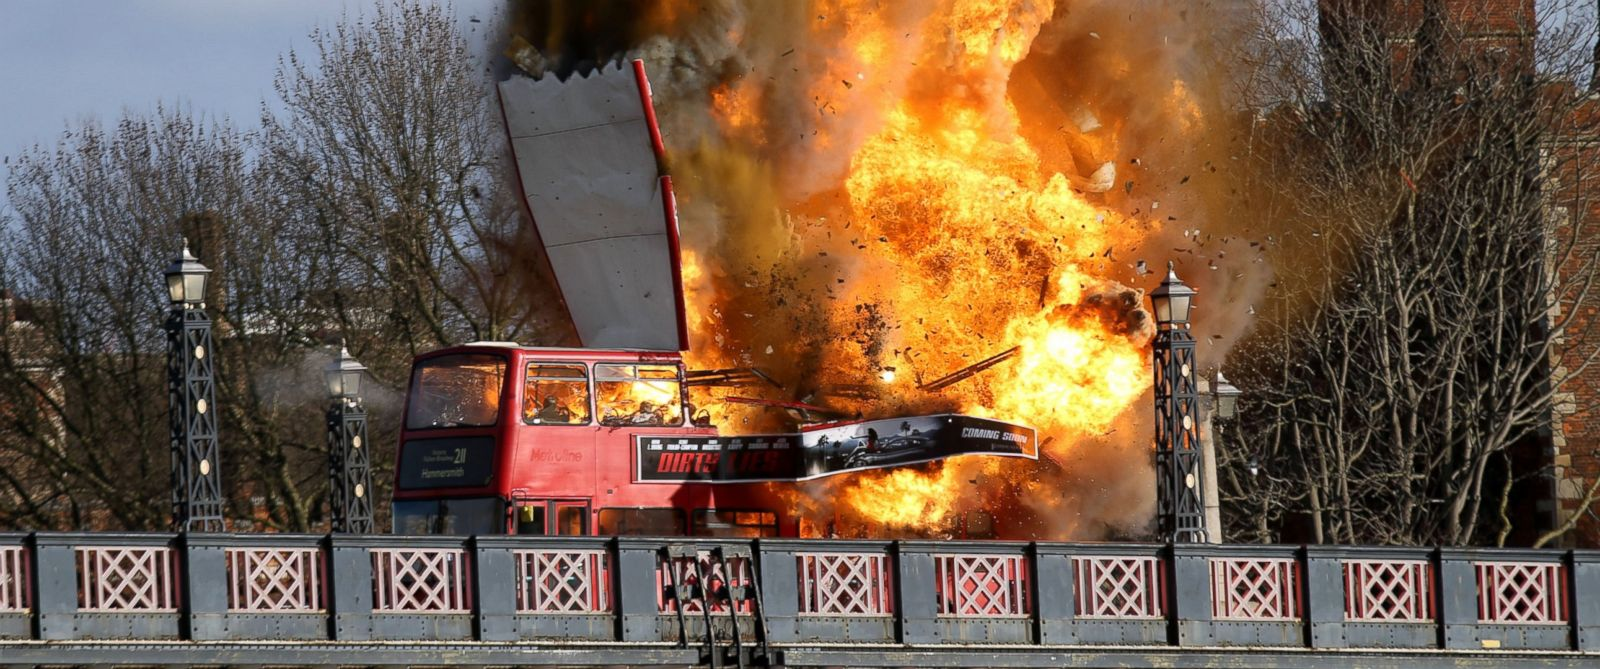 "PHOTO: A bus explodes on Lambeth Bridge, during filming for Jackie Chans new film ""The Foreigner"" in London, Feb. 7, 2016."